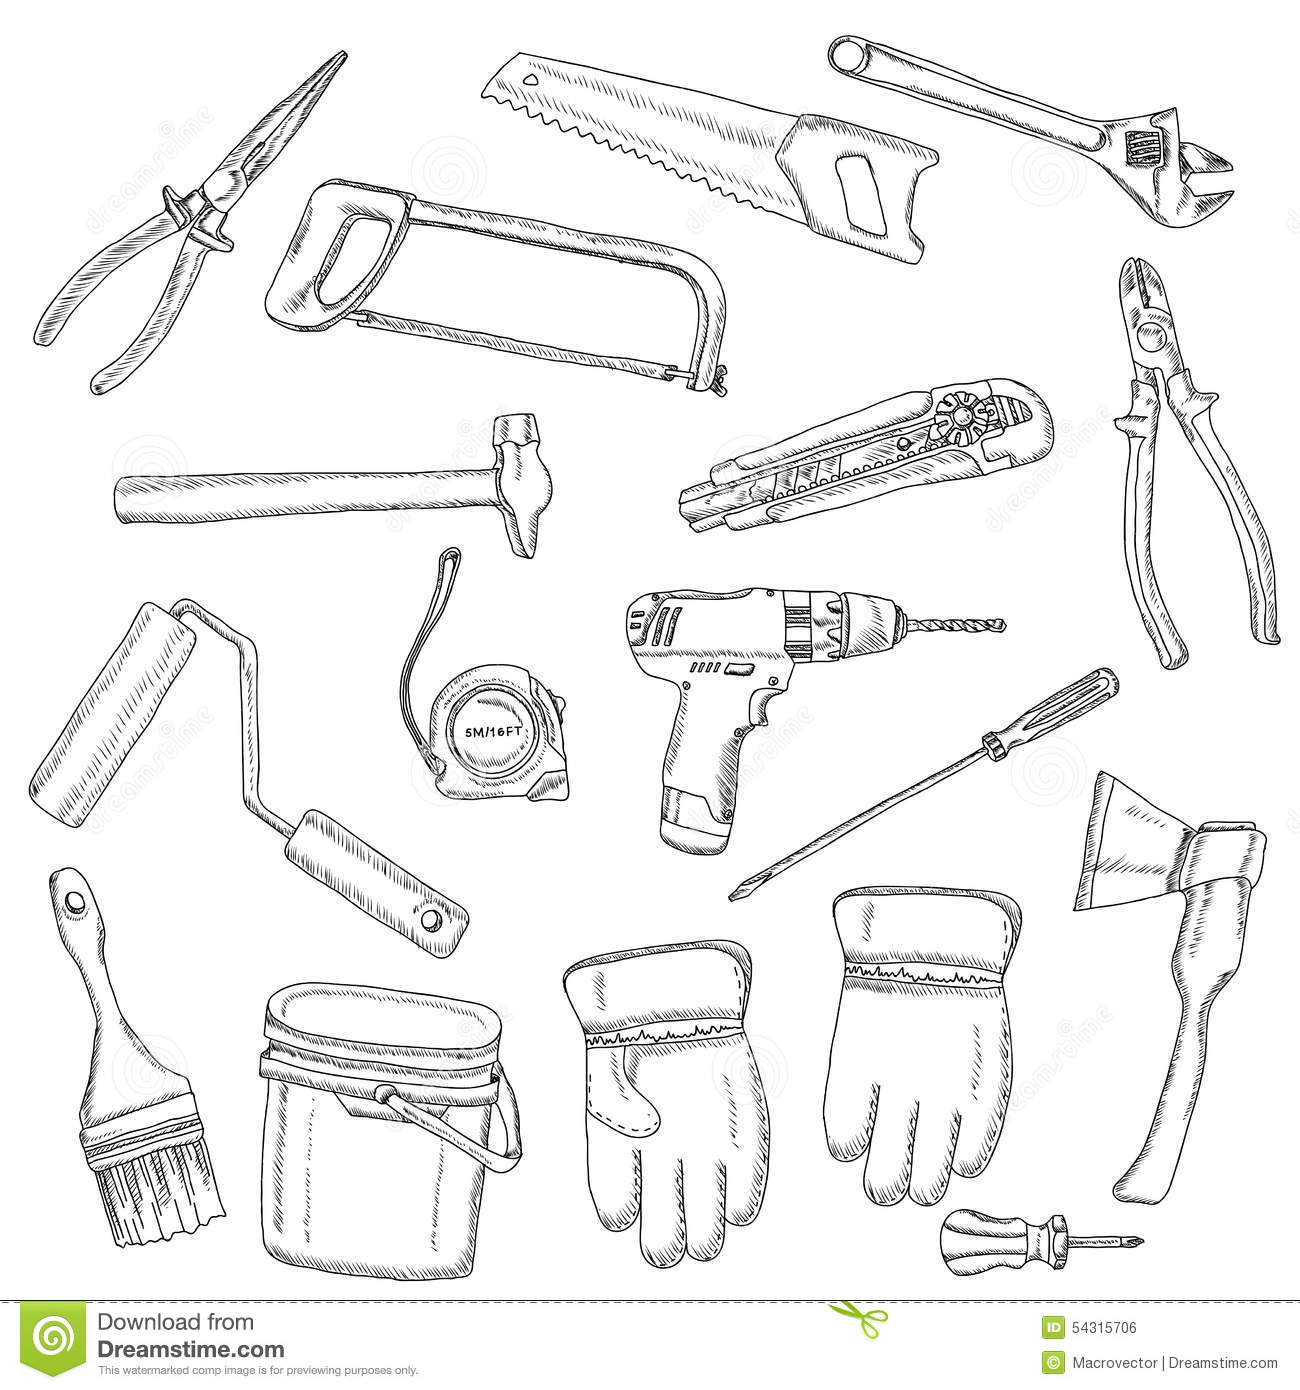 House Renovation Tools Set Black Outline Stock Vector